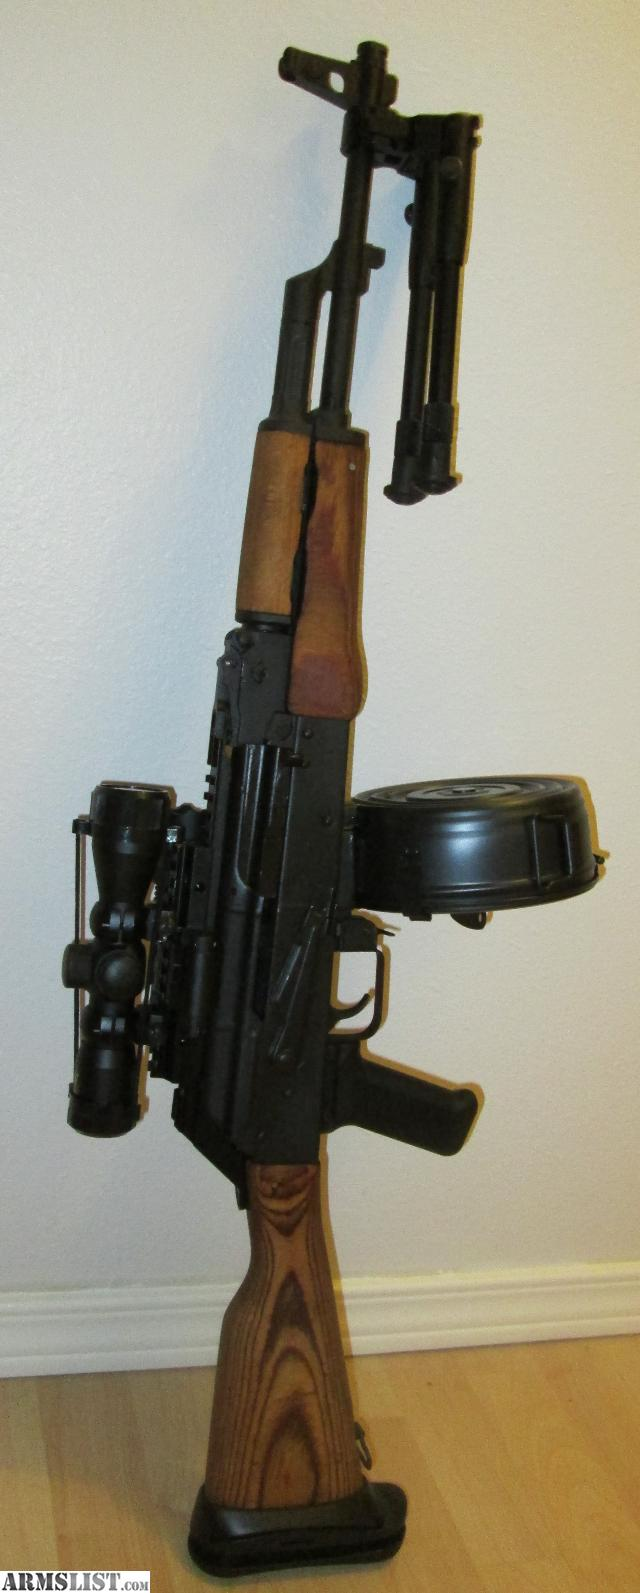 Ak ak 47 for sale by owner - Romanian Ak Only Owner 200rds Thru It